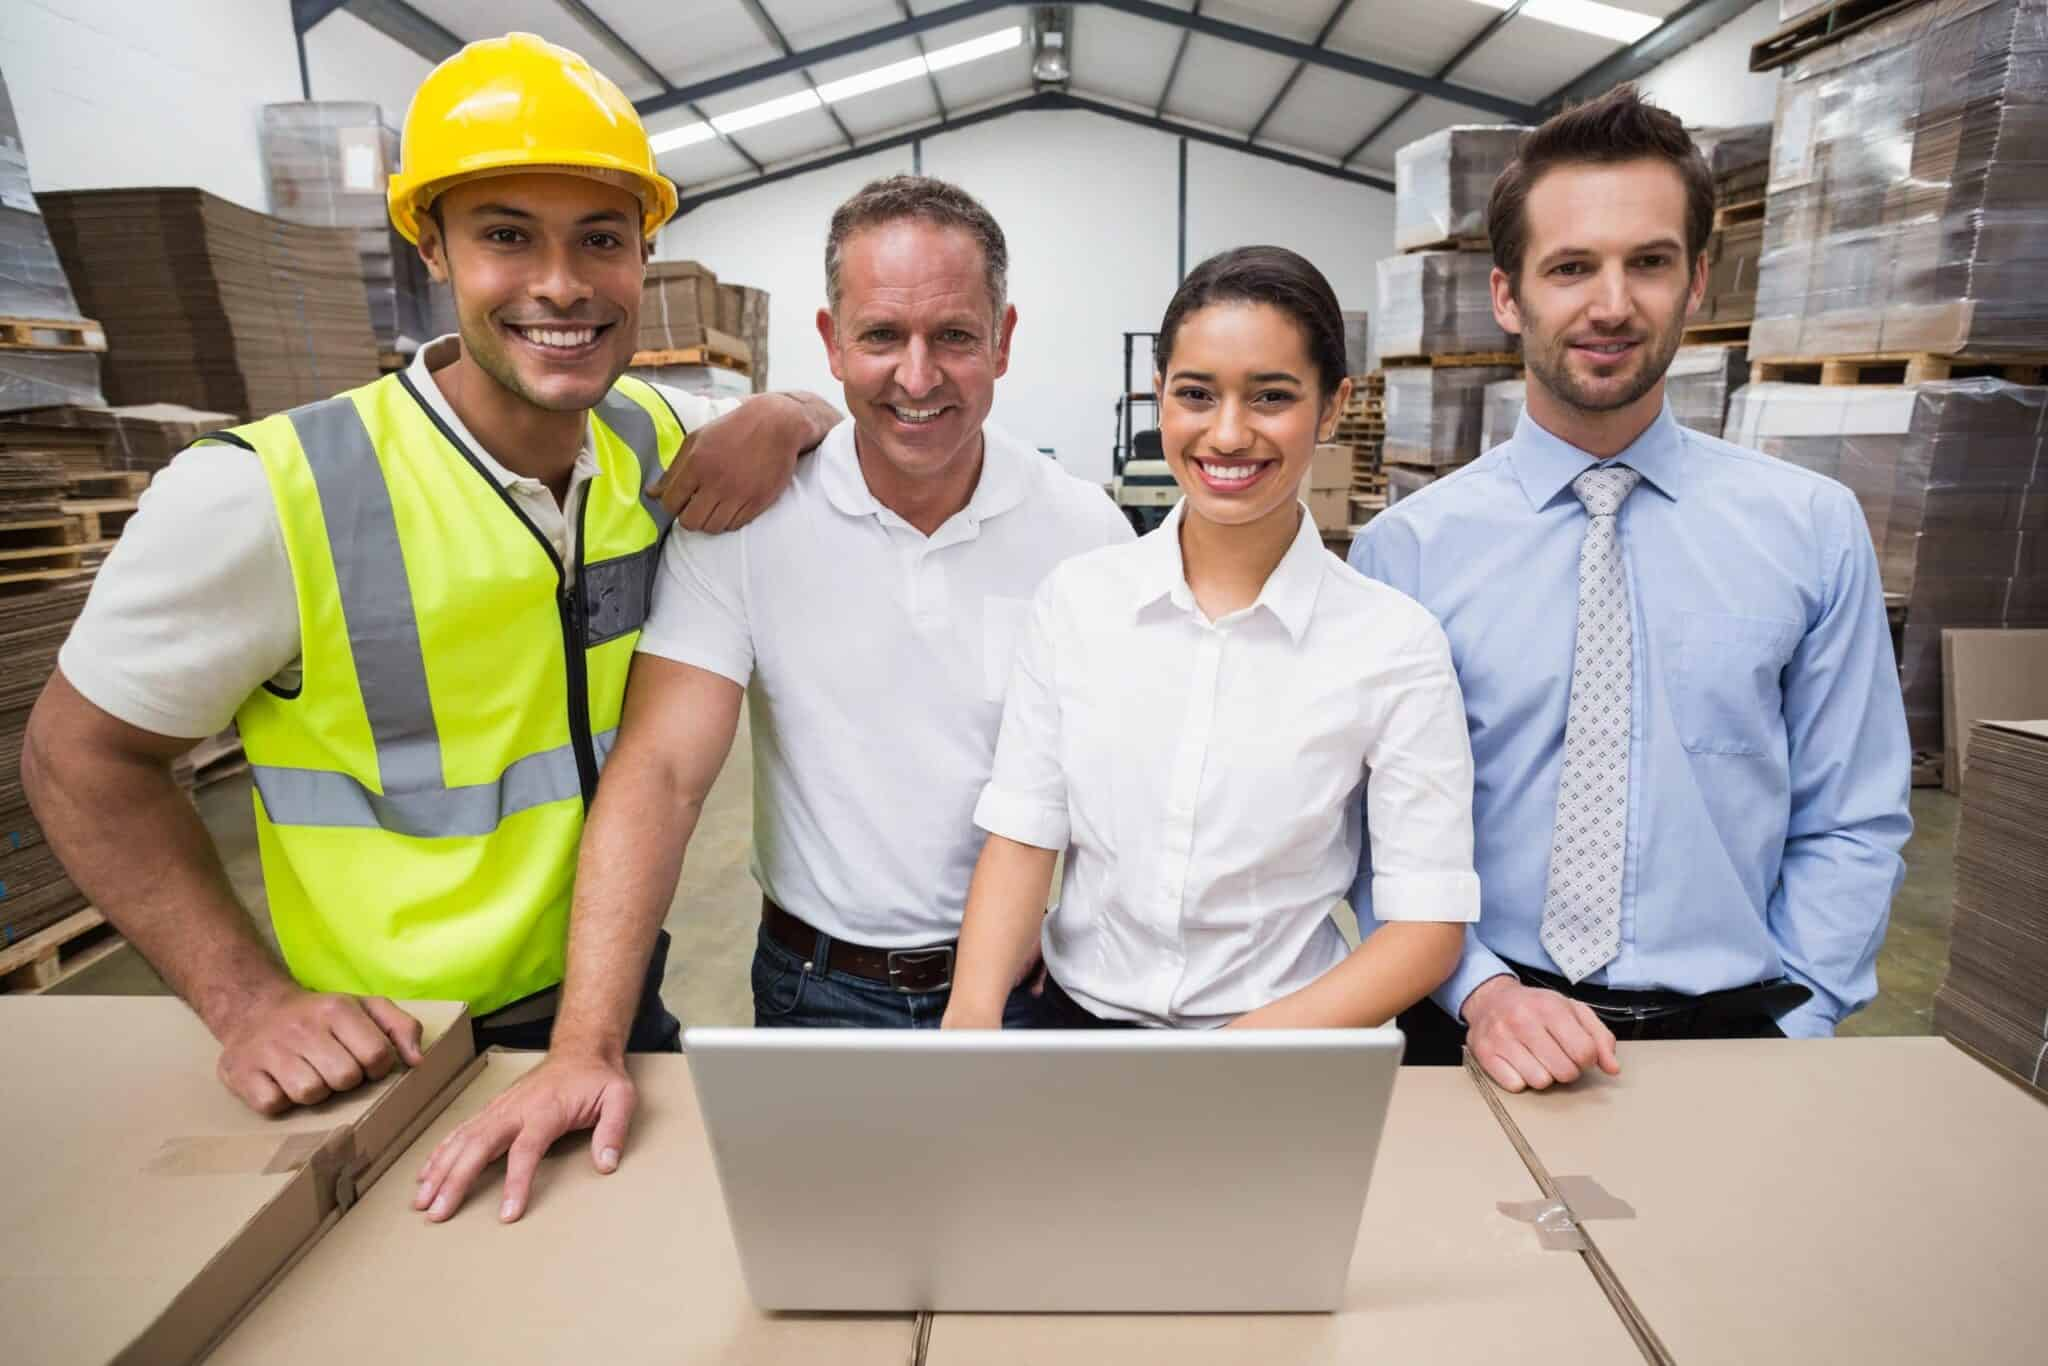 Warehouse managers and workers smiling at a camera in a large warehouse